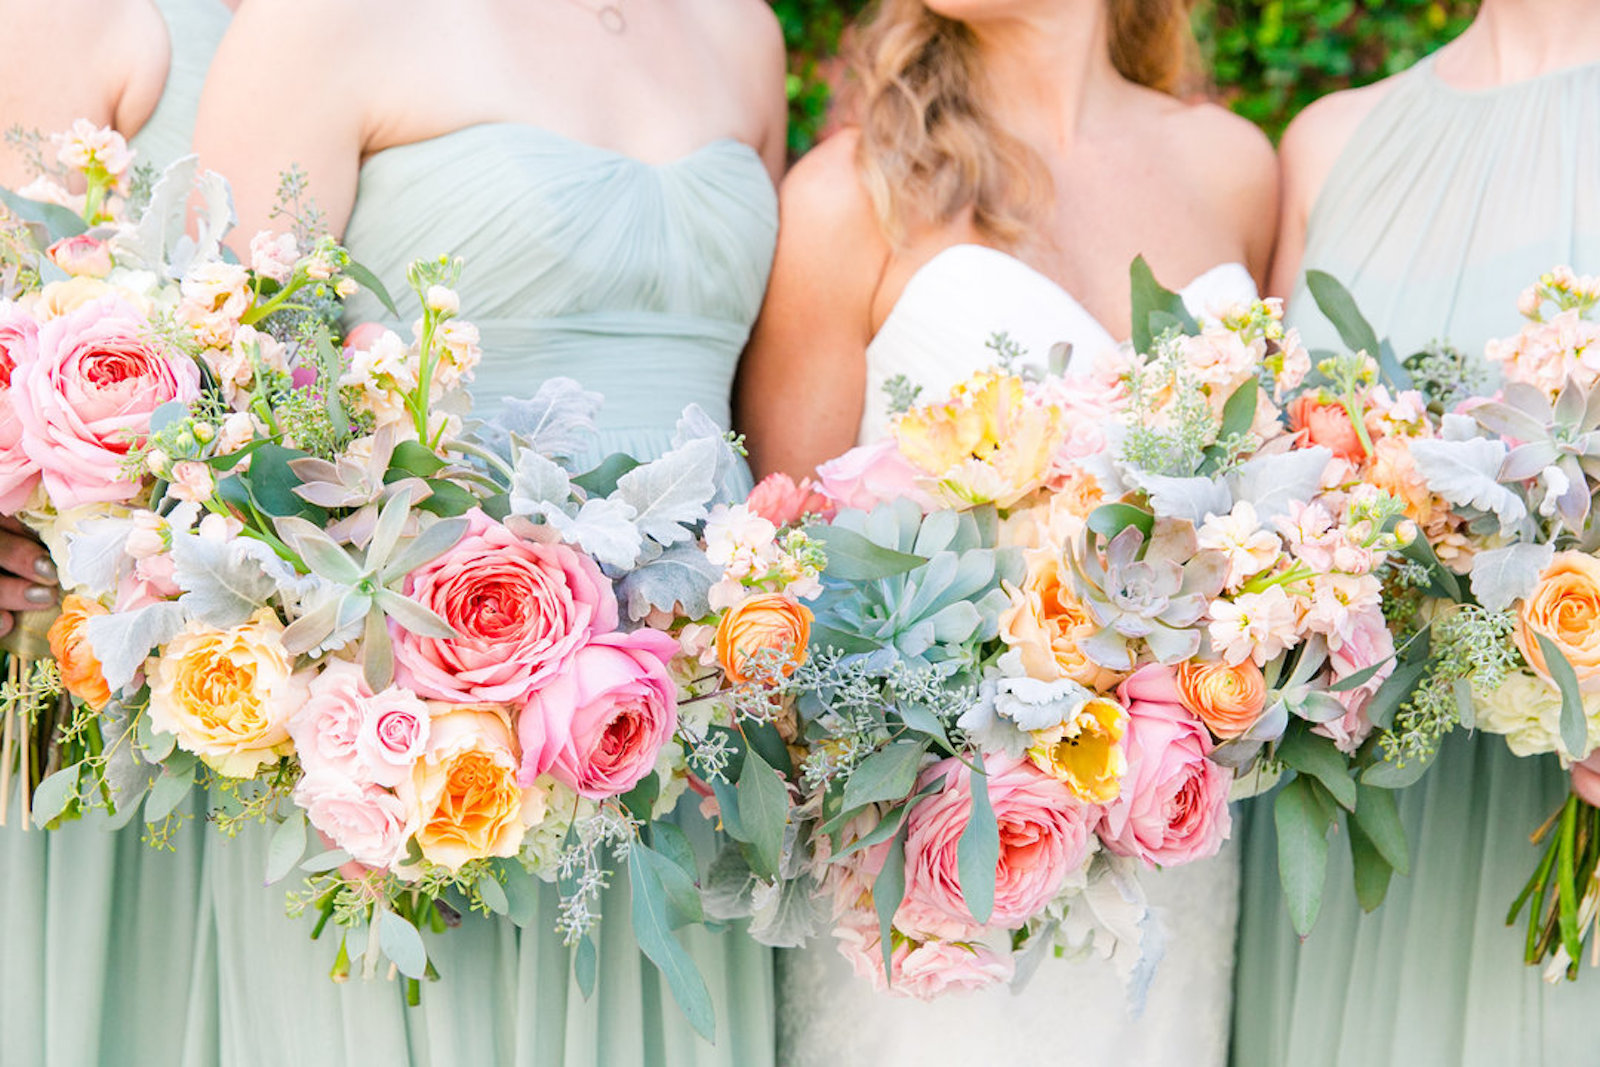 close up of bridesmaids and bride holding bouquets with peonies, roses, and greenery